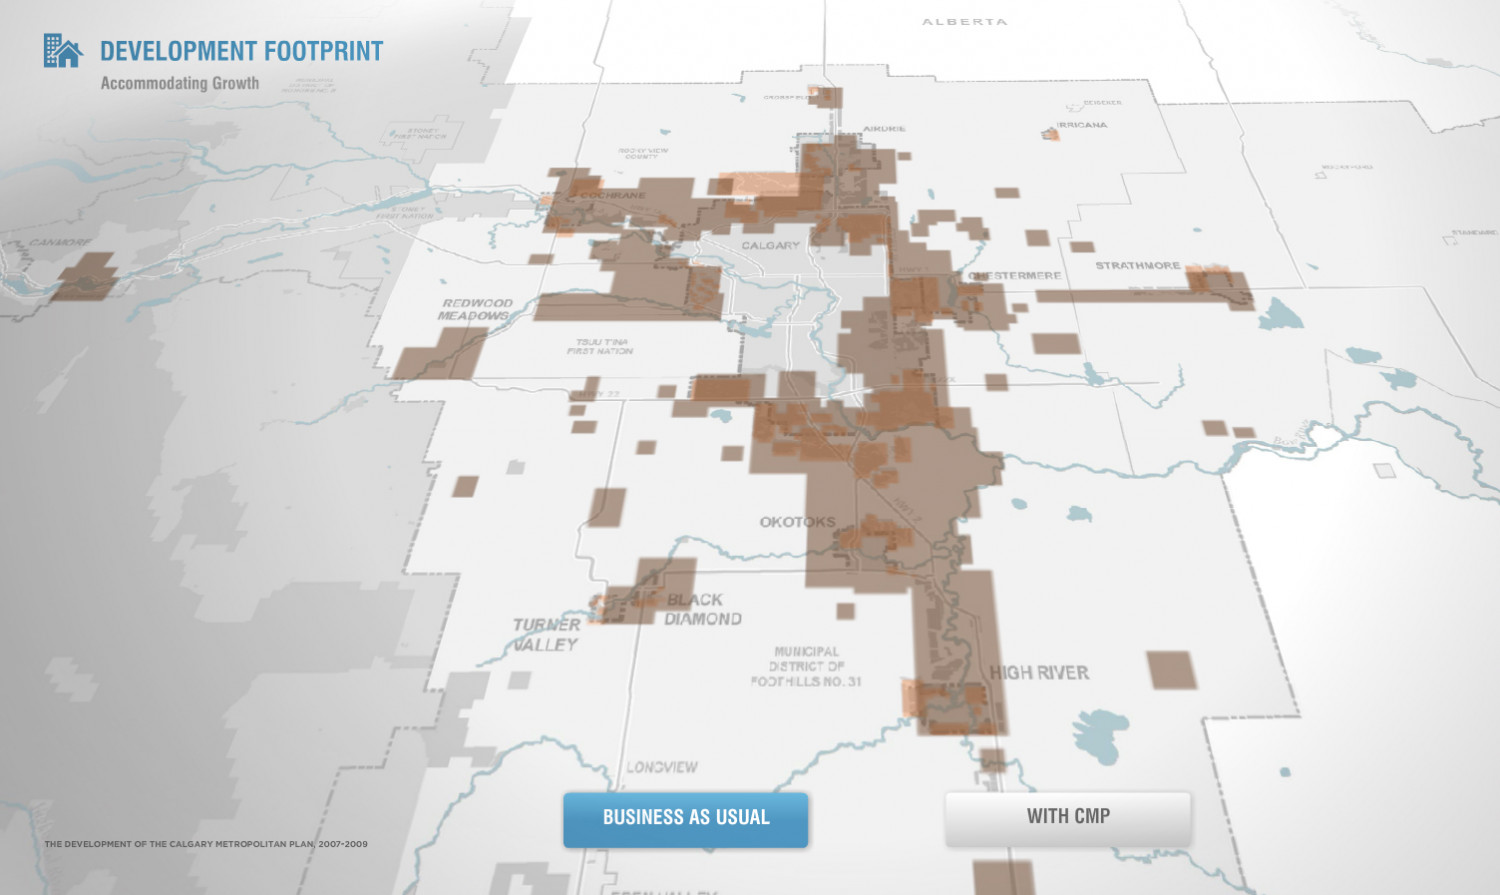 Development footprint without the Calgary Metropolitan Plan Infographic